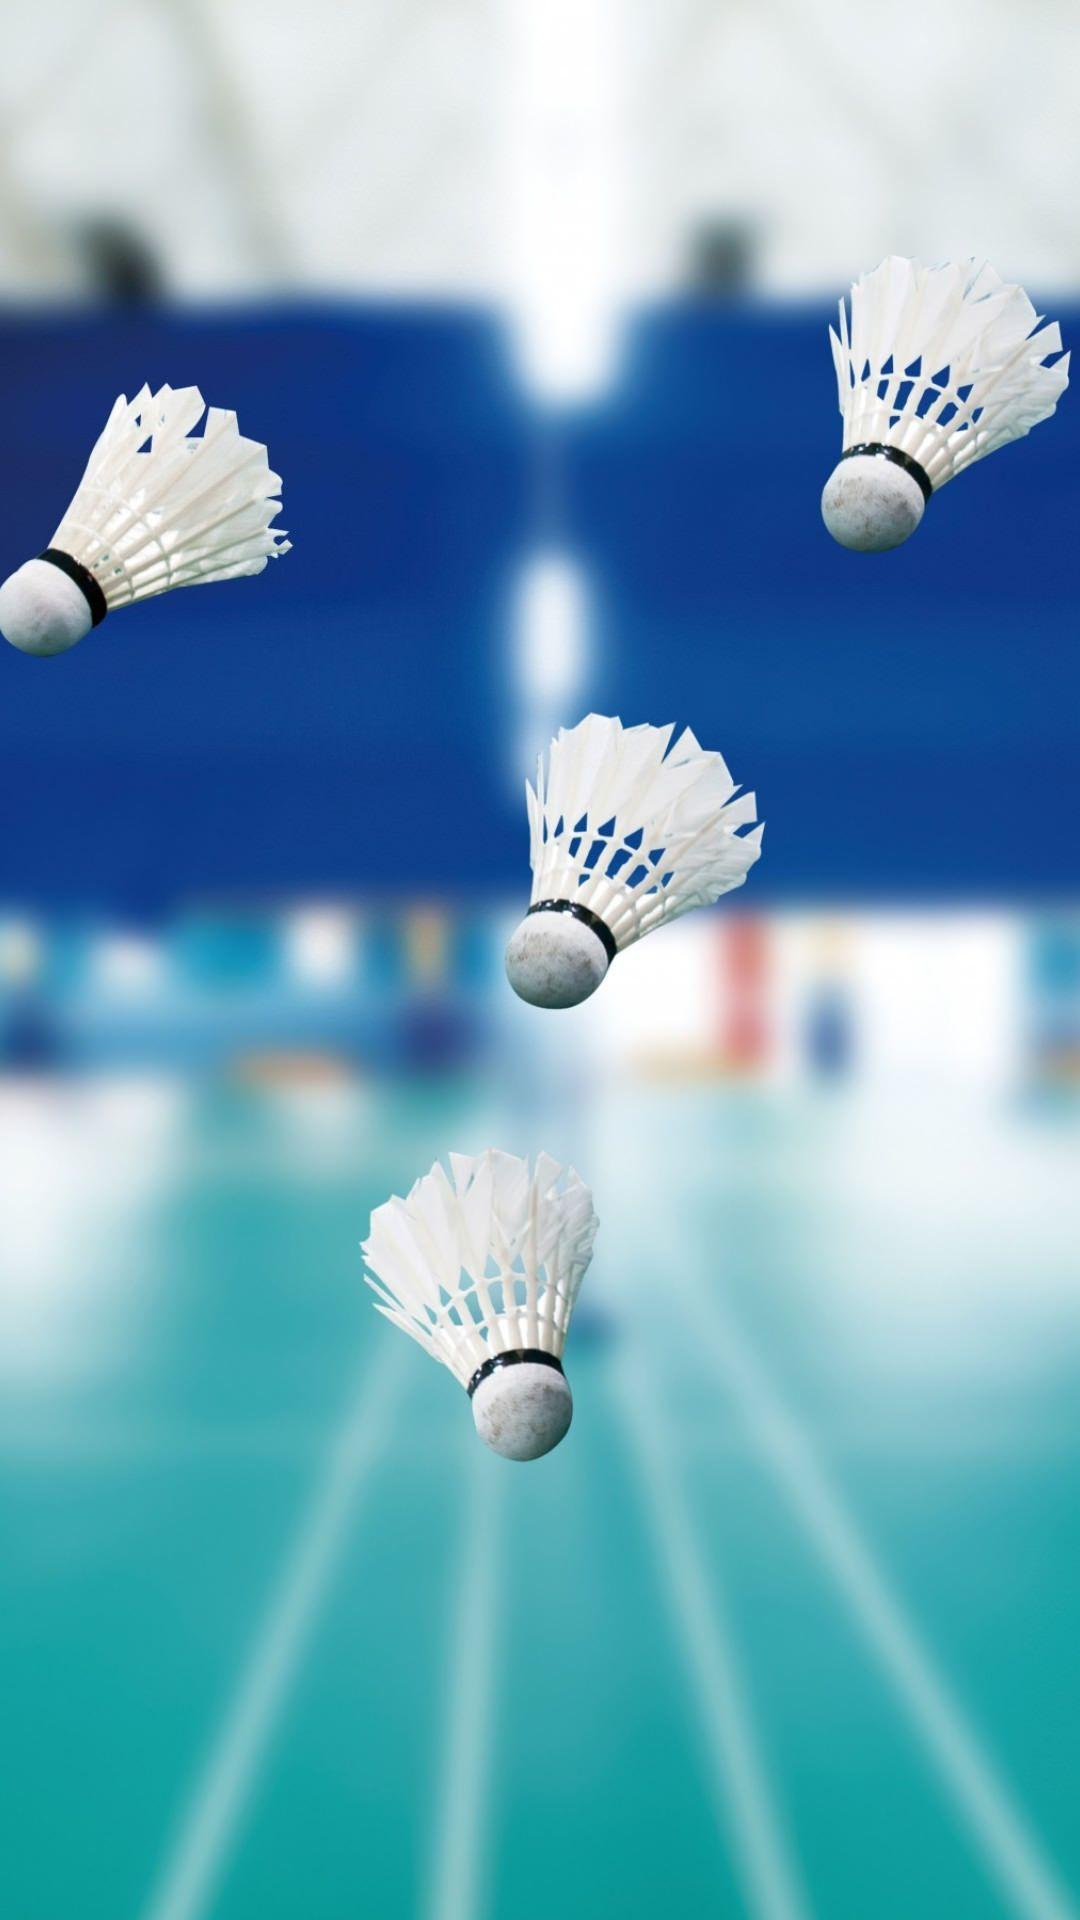 Badminton Wallpaper iPhone 6 Plus Resolution - Wallpapers HD Pub